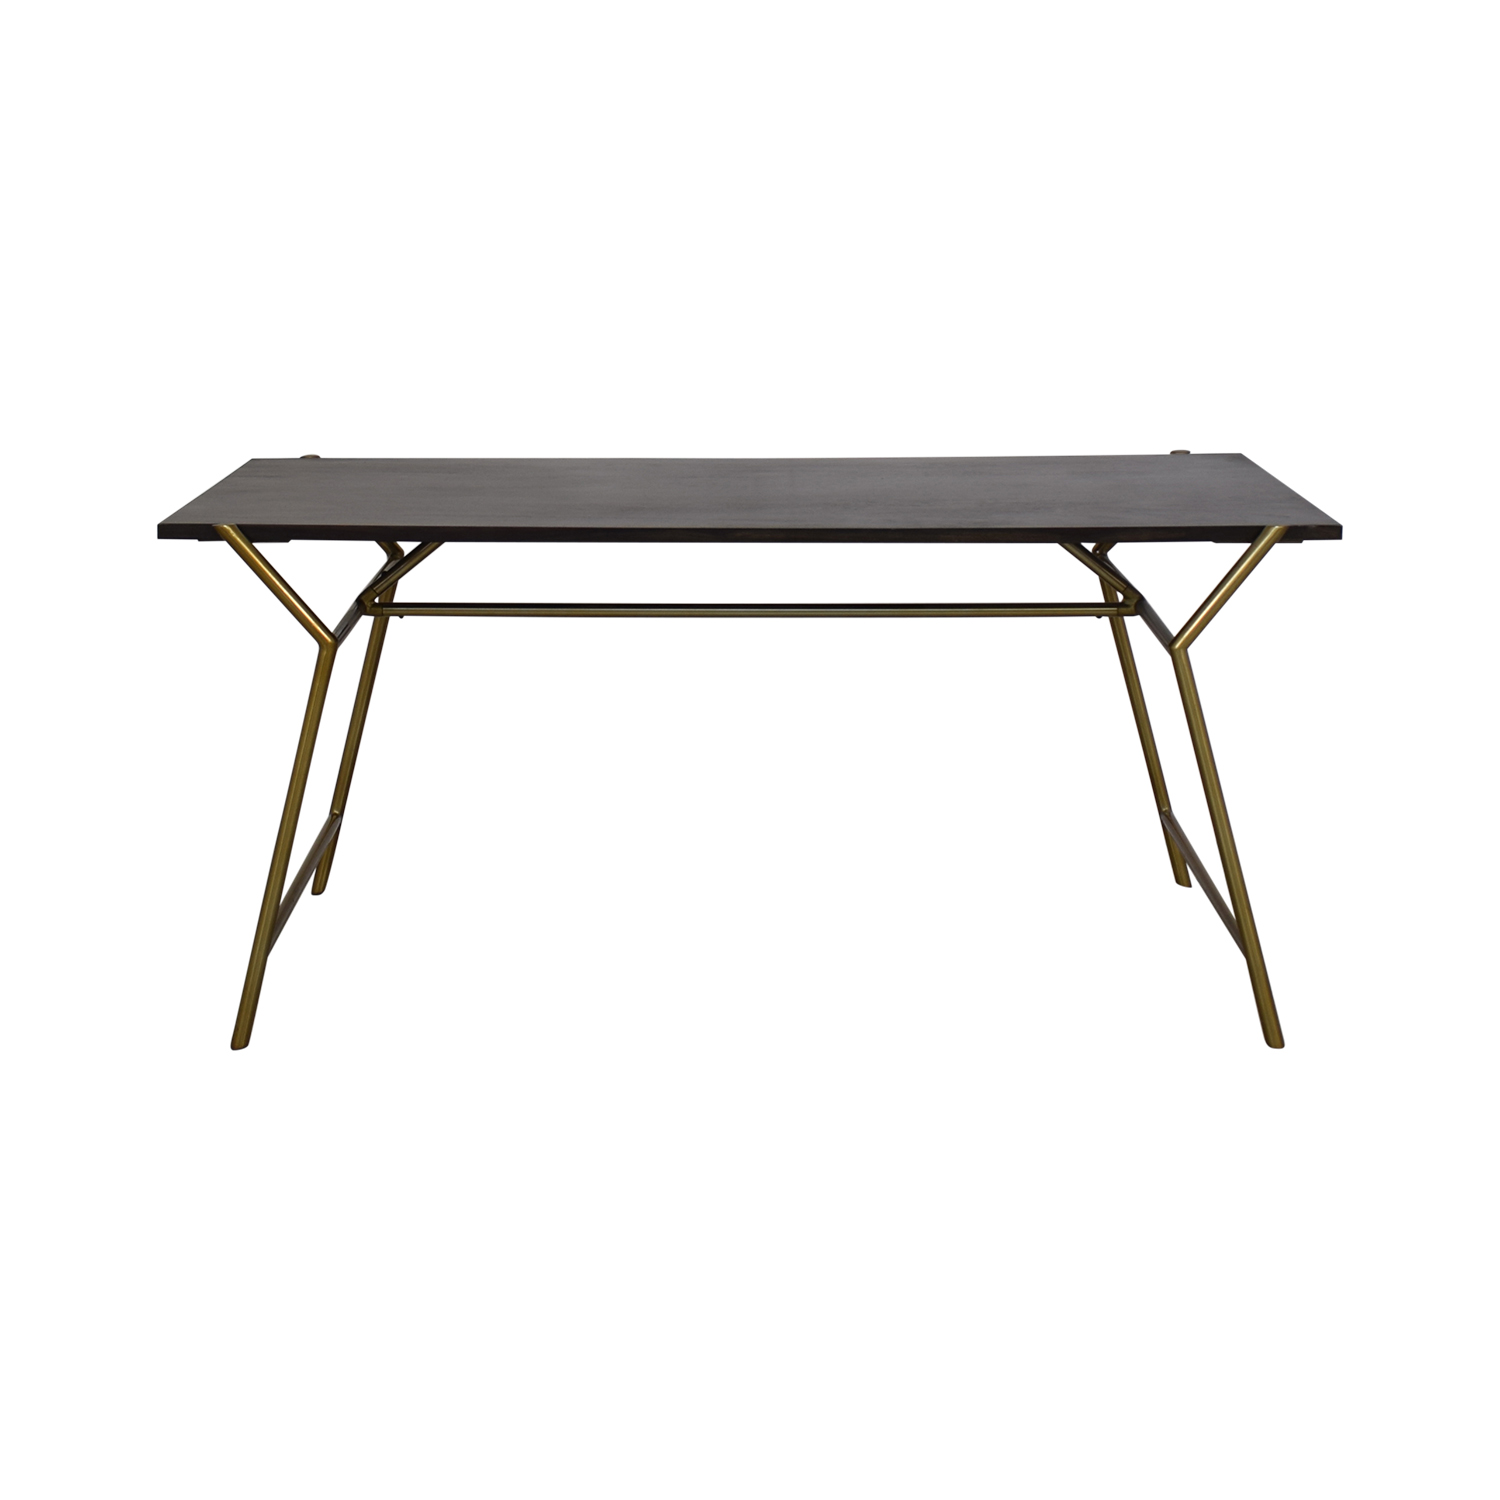 CB2 CB2 Flynn Desk on sale